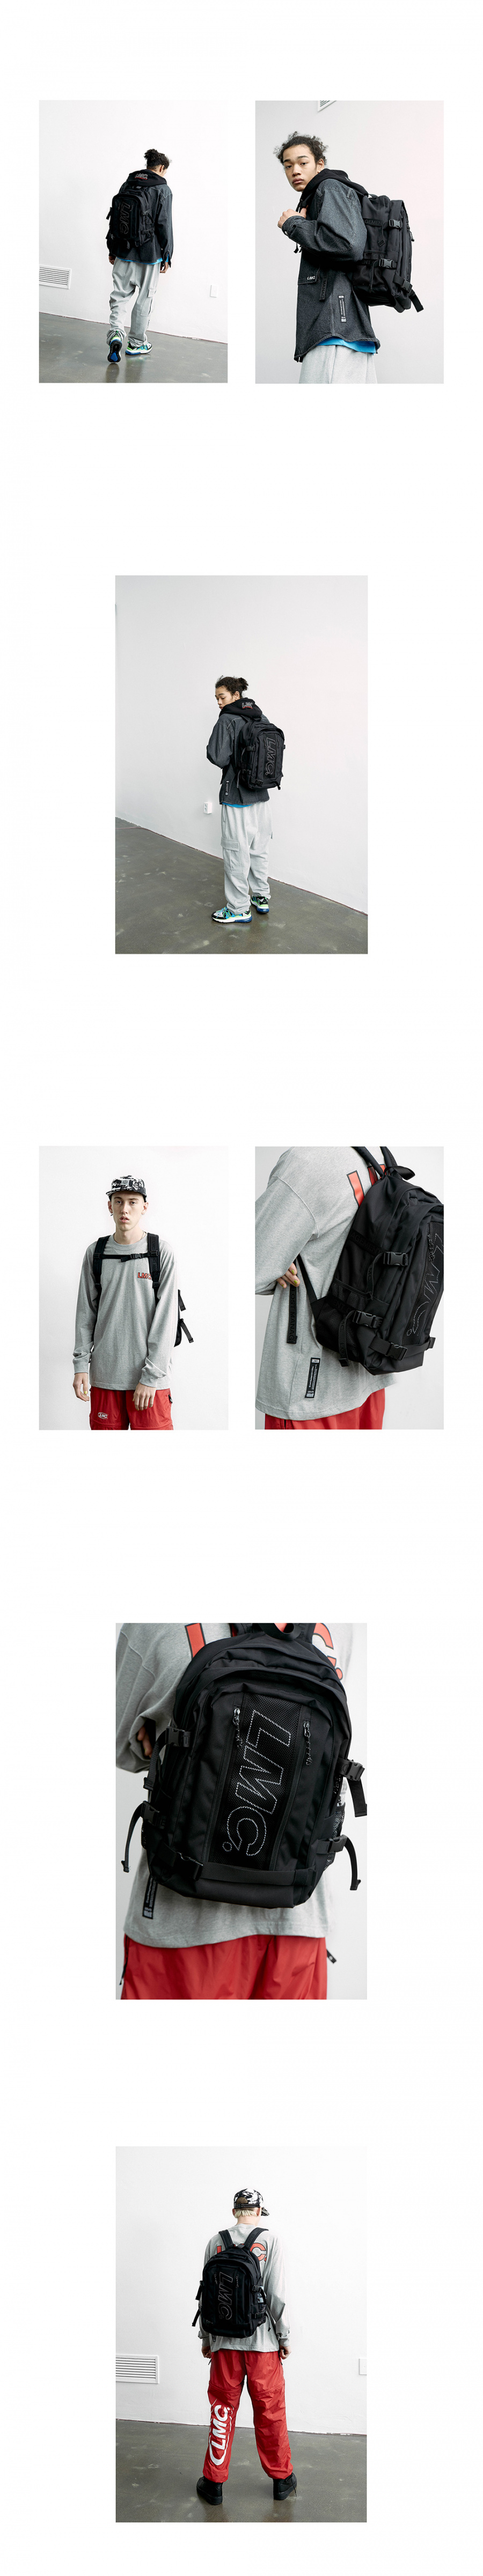 엘엠씨(LMC) LMC UTILITY BACKPACK black